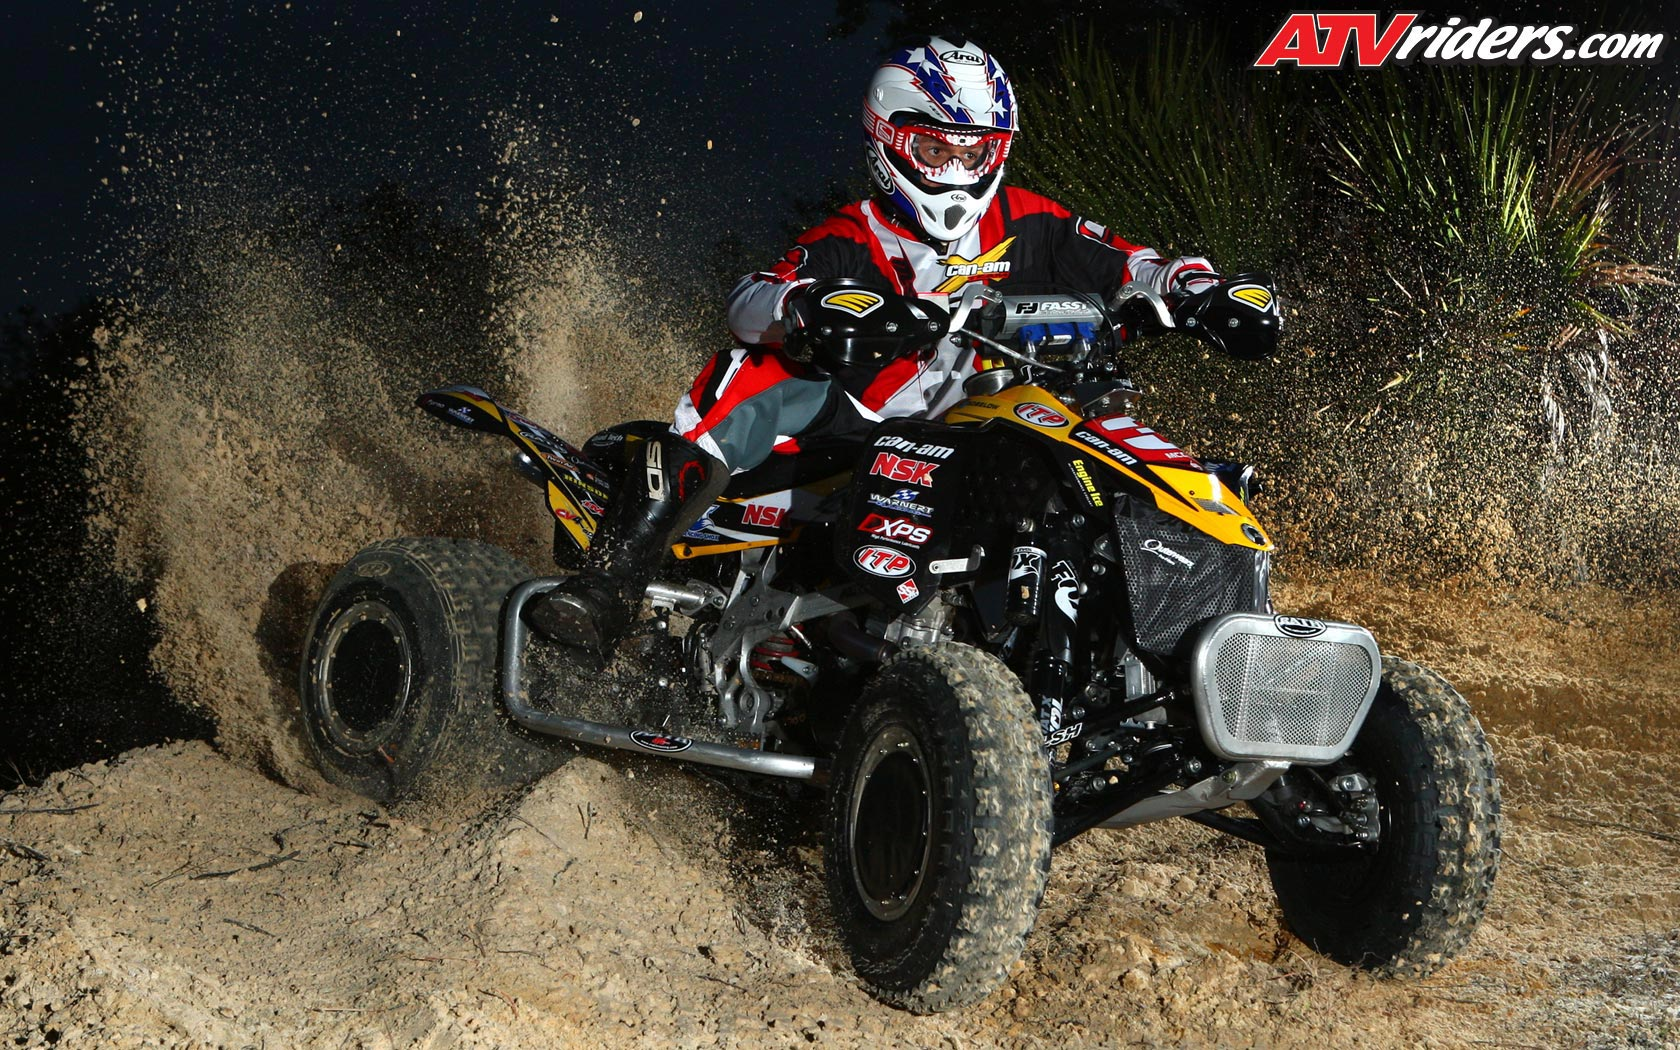 Wallpapers   Weekly ATV UTV Desktop Wallpapers March 10th 2010 1680x1050